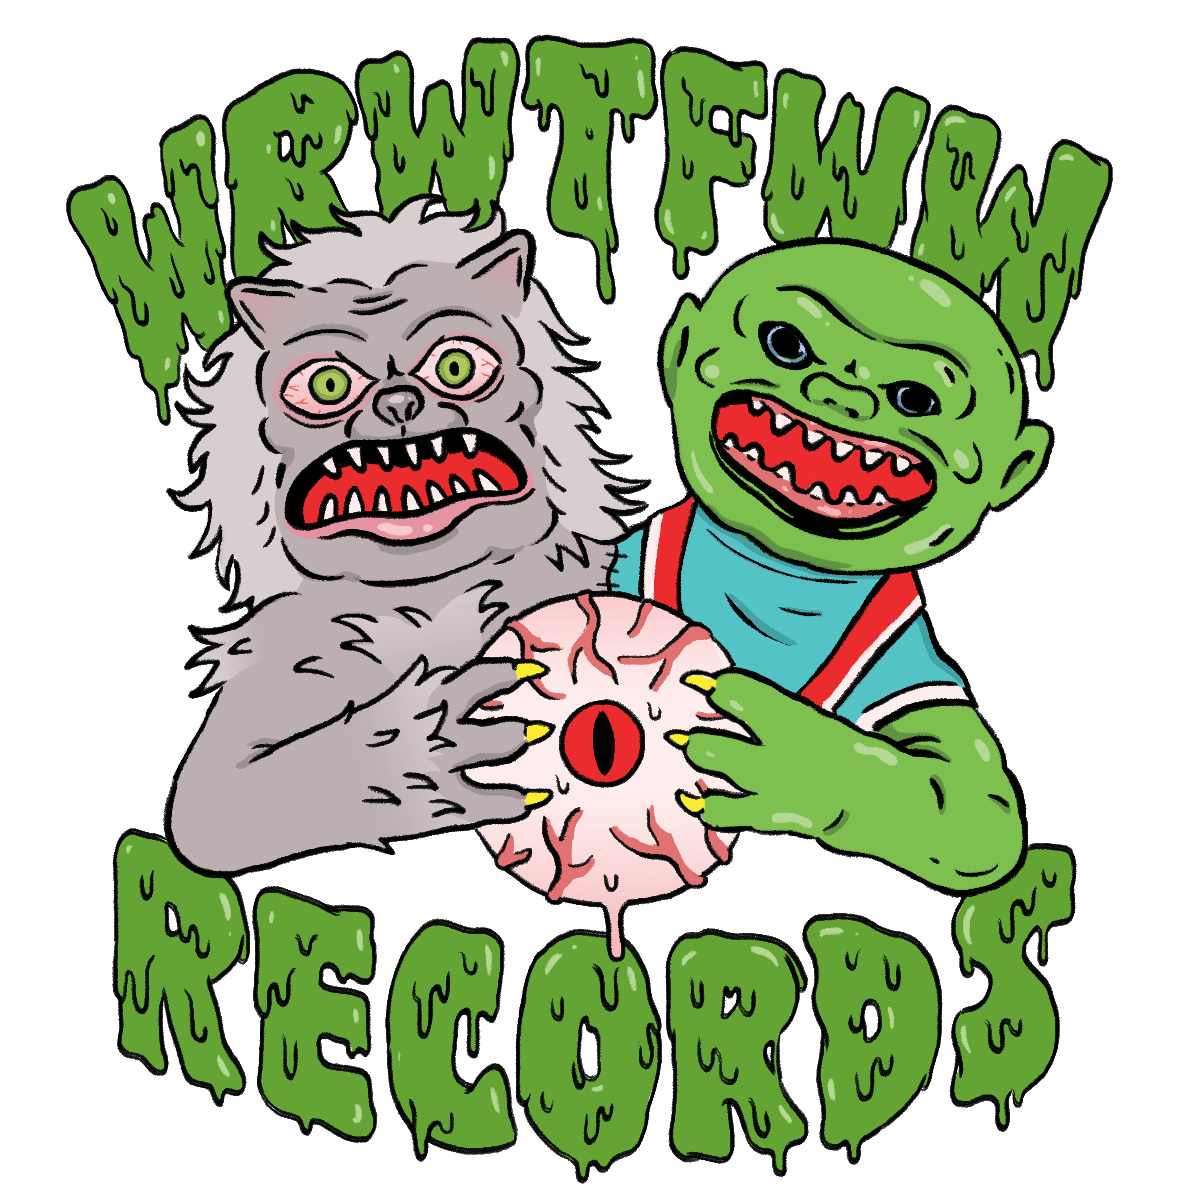 GHOULIES, TROLL & TERROVISION OSTs on Limited Edition Coloured Vinyl from WRWTFWW Records (20 November)